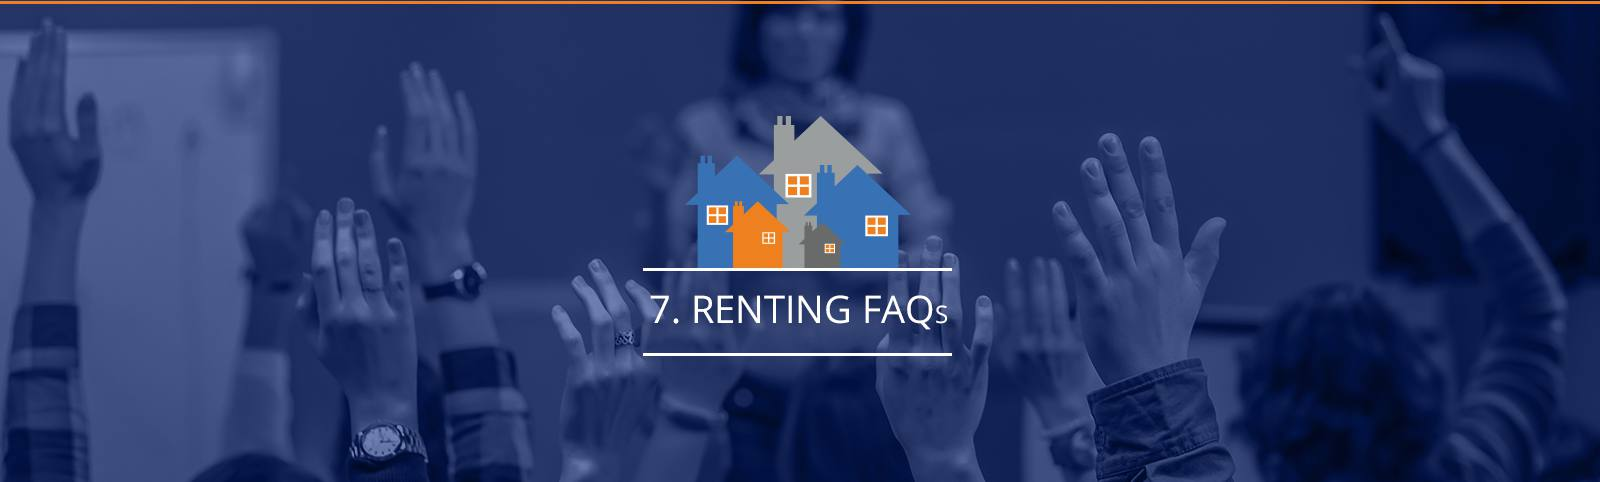 FAQ on Renting a Property in Scotland | s1homes